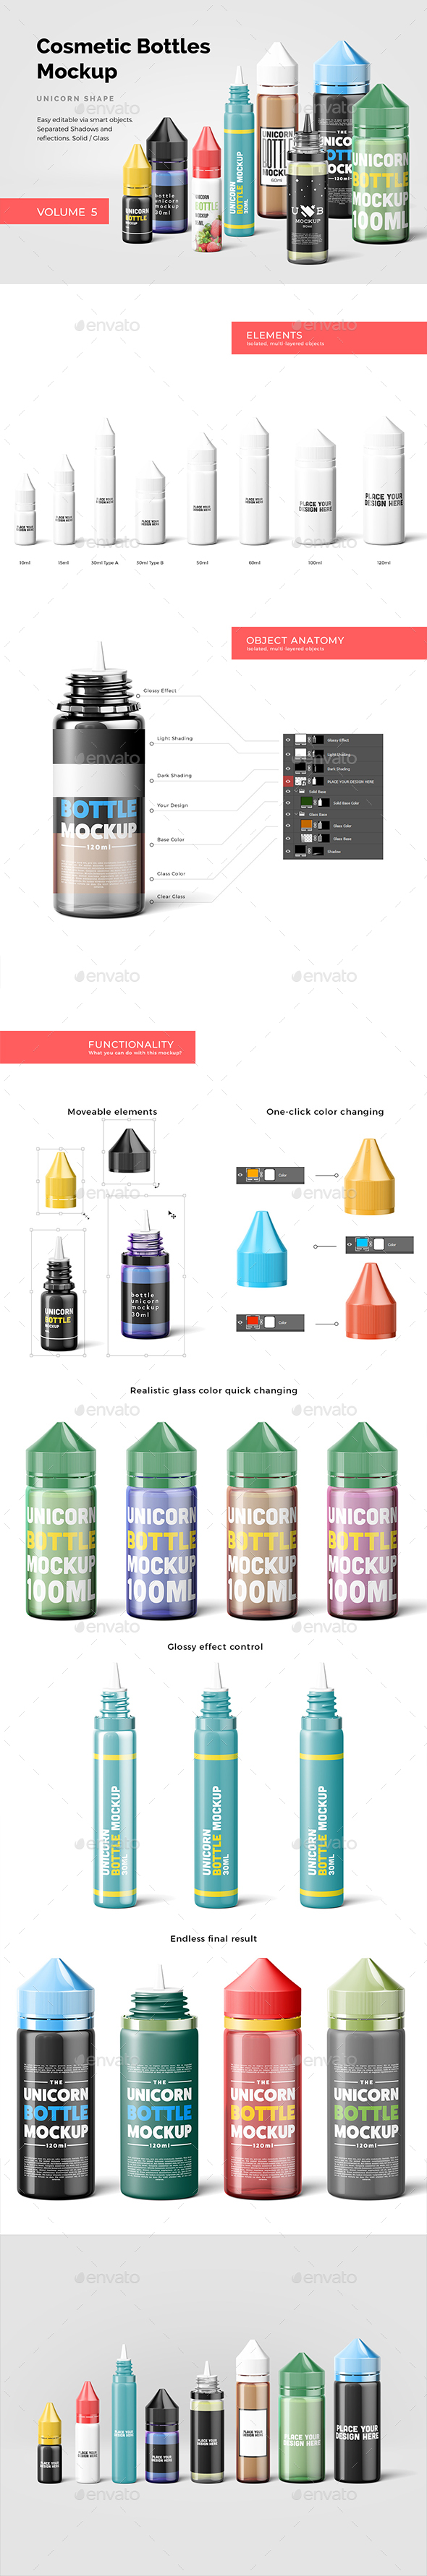 Cosmetic Bottles Mockup Vol.5 - Beauty Packaging